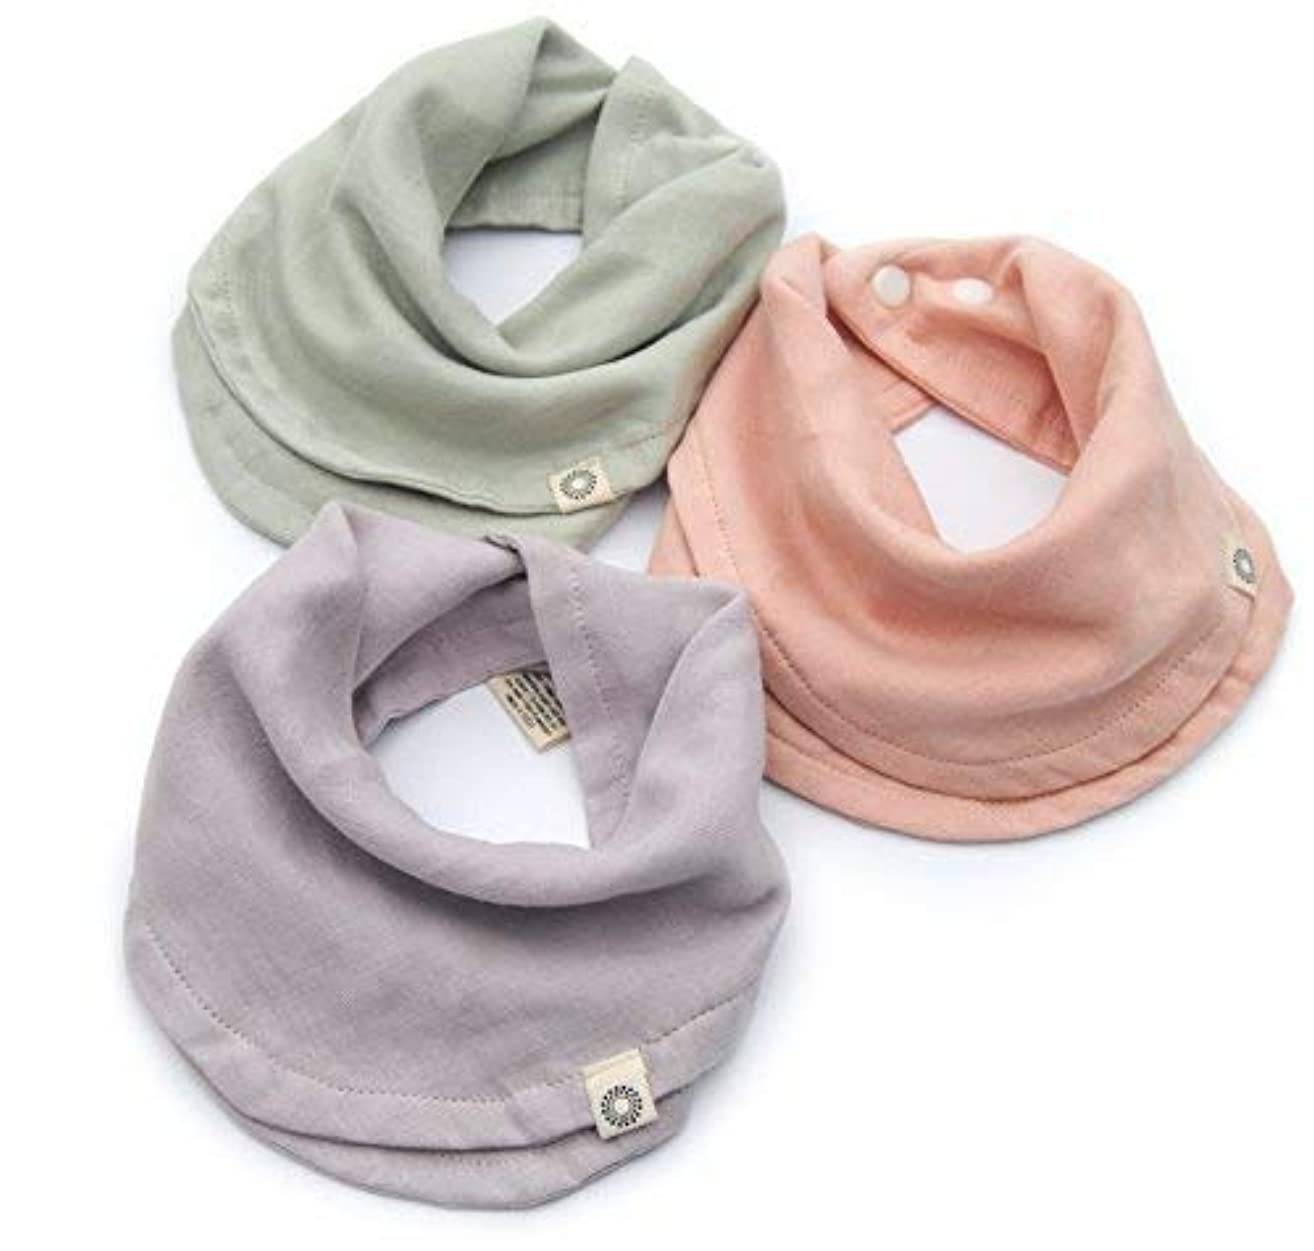 Indi by Kishu Baby - Girl Bibs - Organic Infinity Scarf Bib for Girls with Snaps - 100% Organic Cotton Muslin - 3 Luxuriously Soft, Solid Color Drool Bibs for Teething Babies